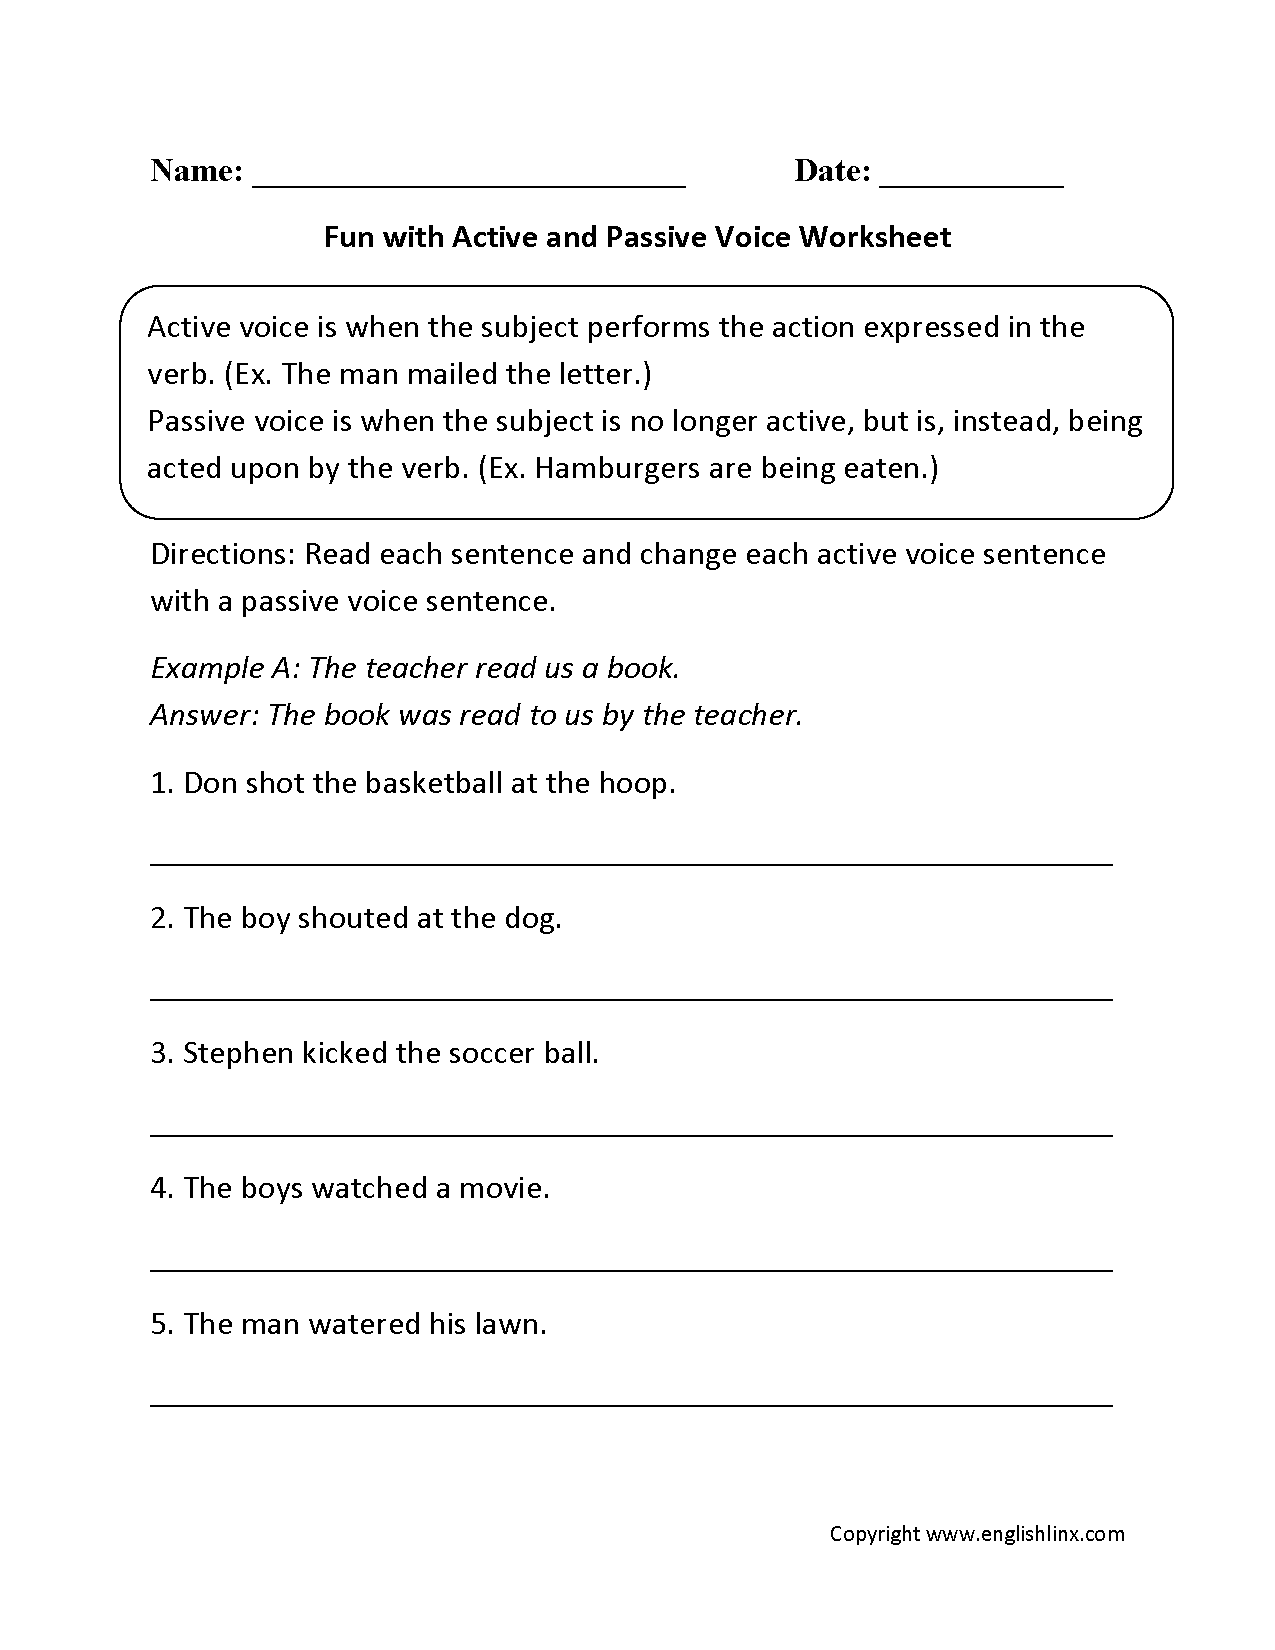 Worksheets Active Vs Passive Voice Worksheet englishlinx com active and passive voice worksheets worksheets